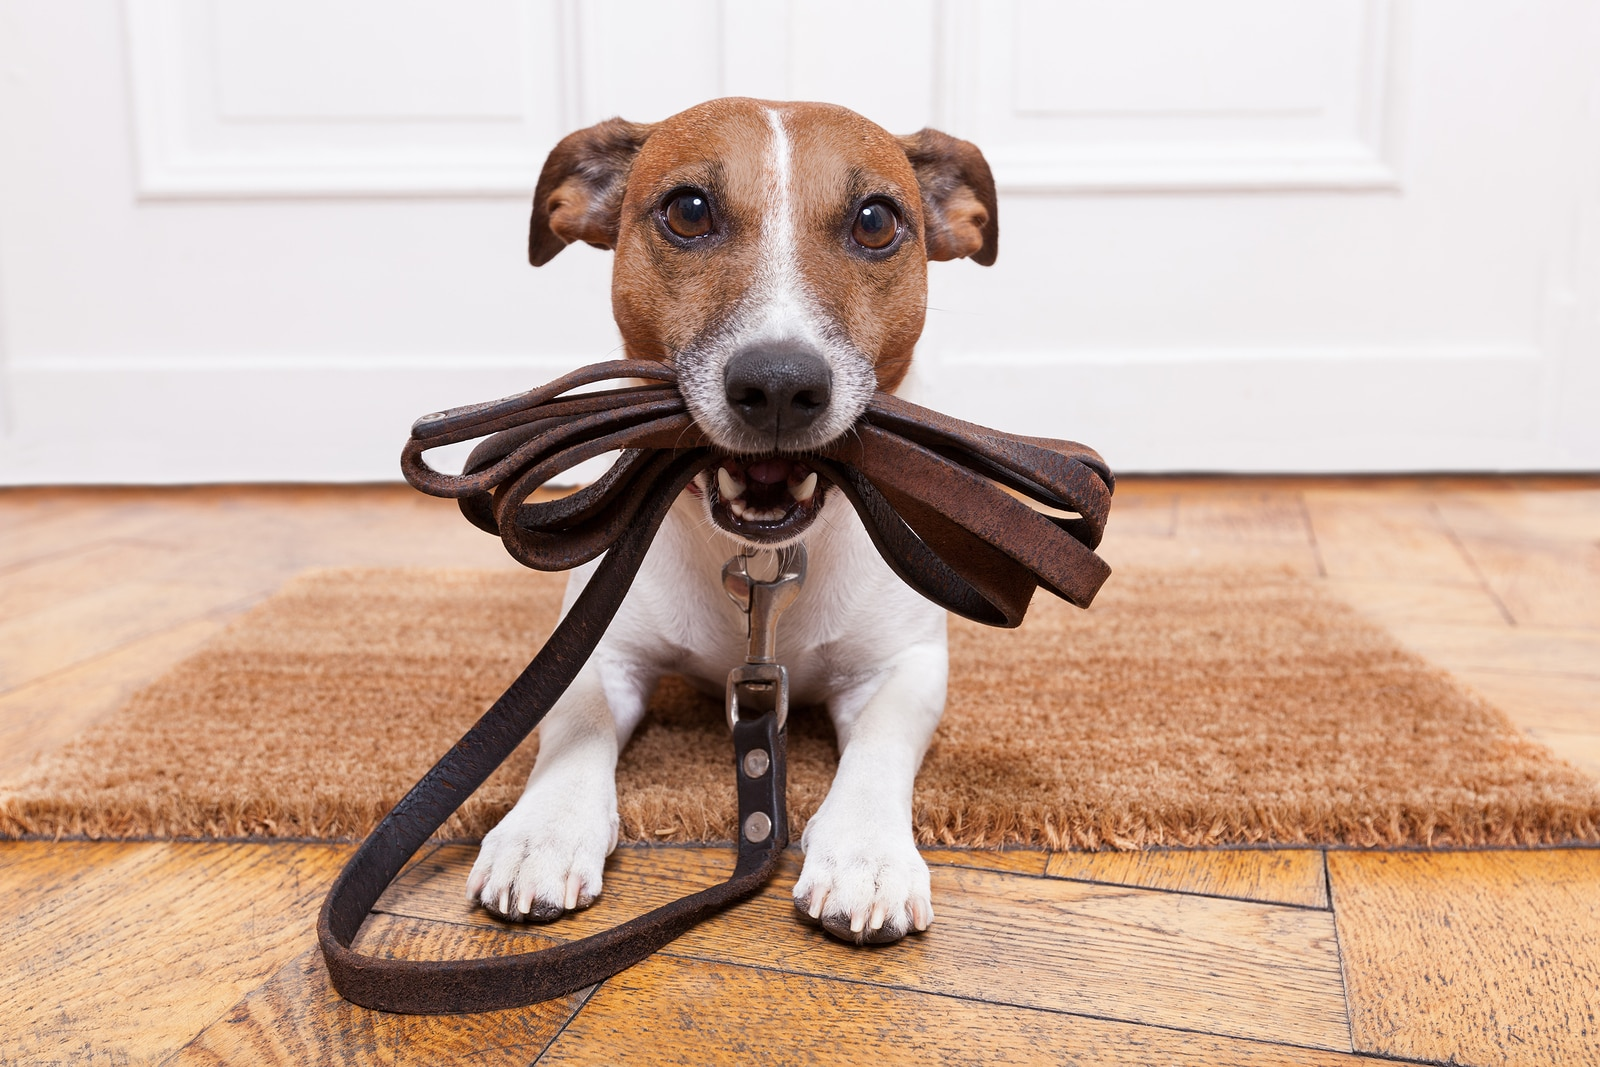 Jack Russell terrier with leather leash in mouth in front of door.